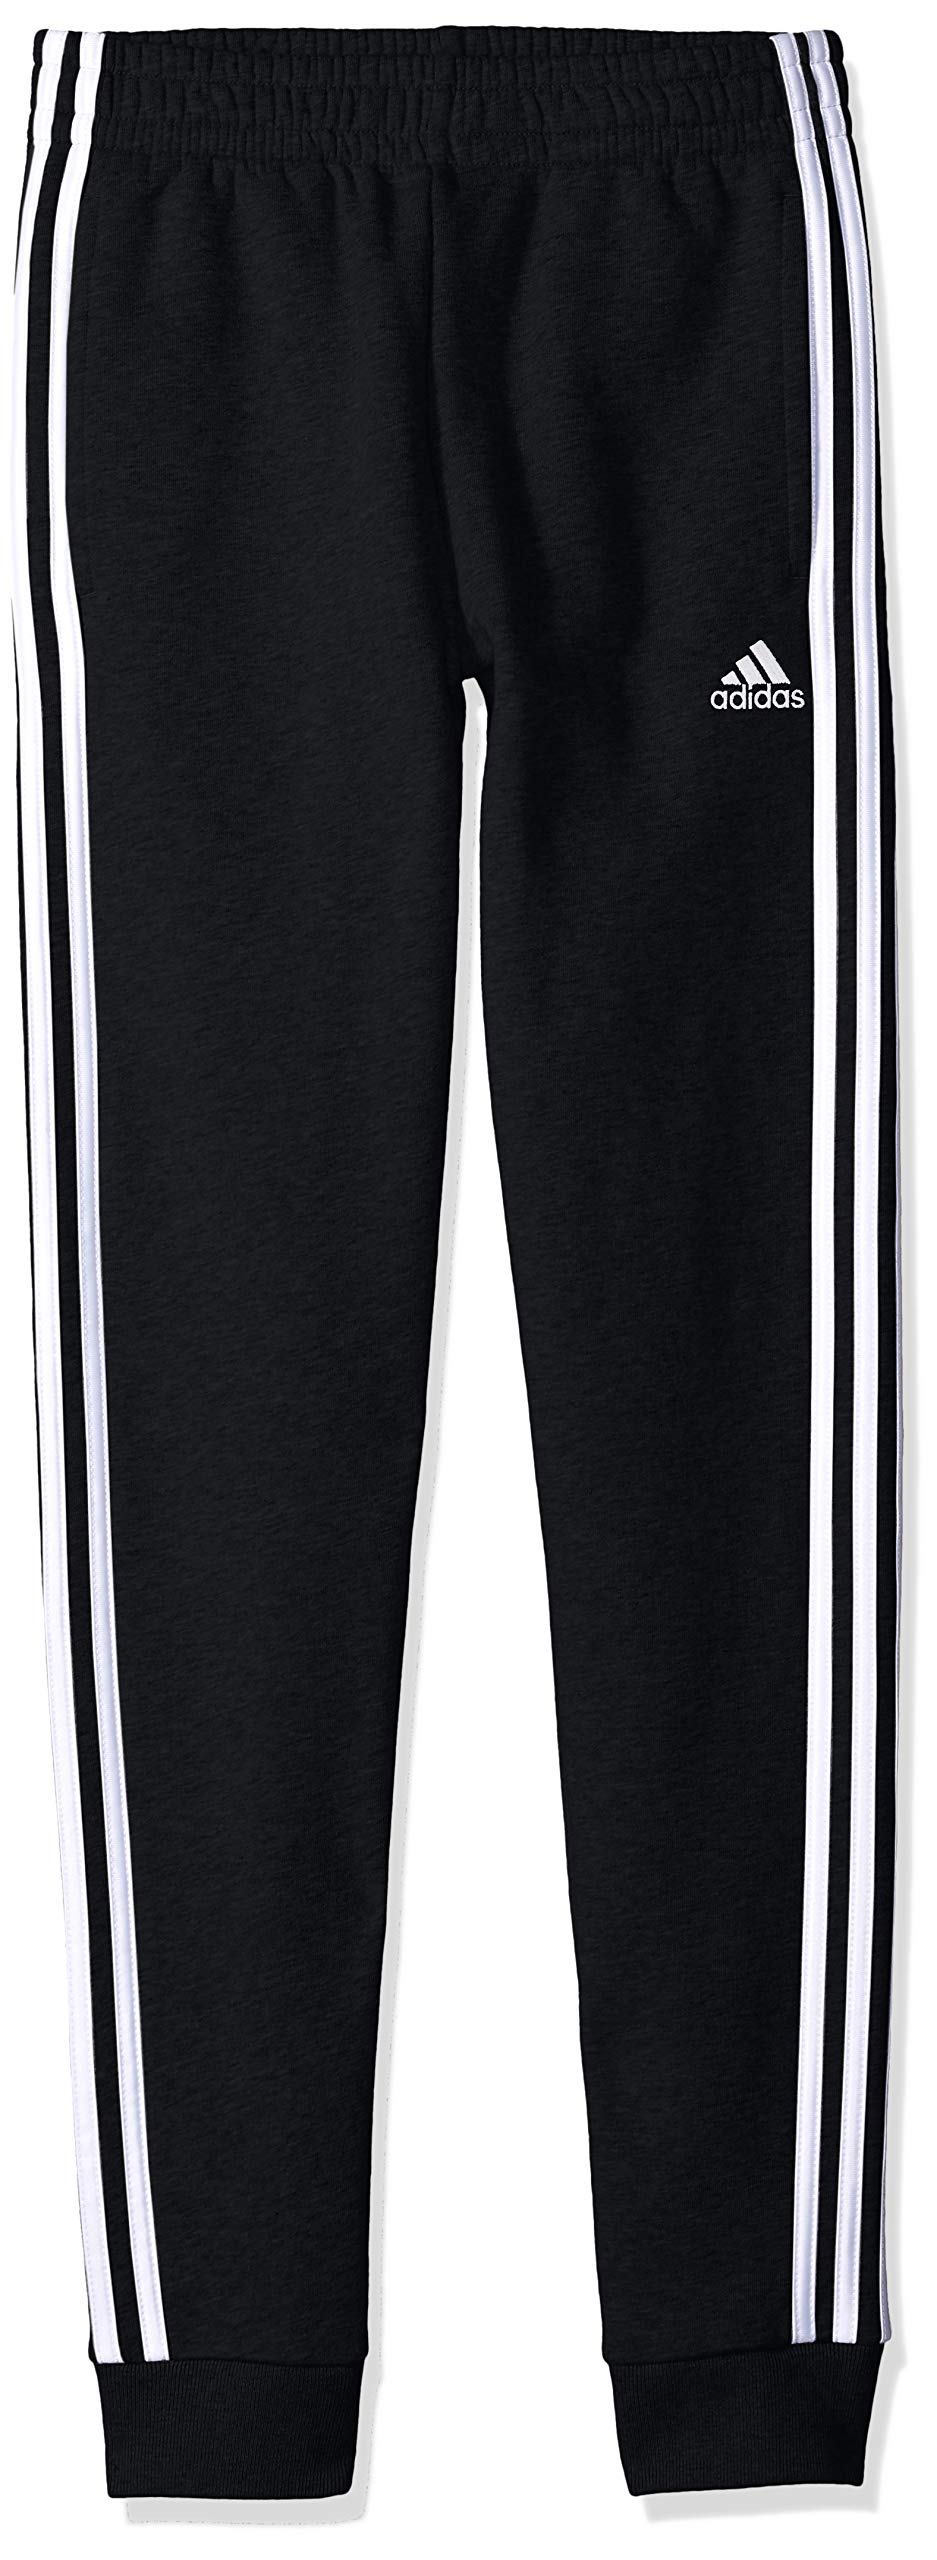 adidas Boys' Big Fleece Jogger Pant, Focus Black, S (8) by adidas